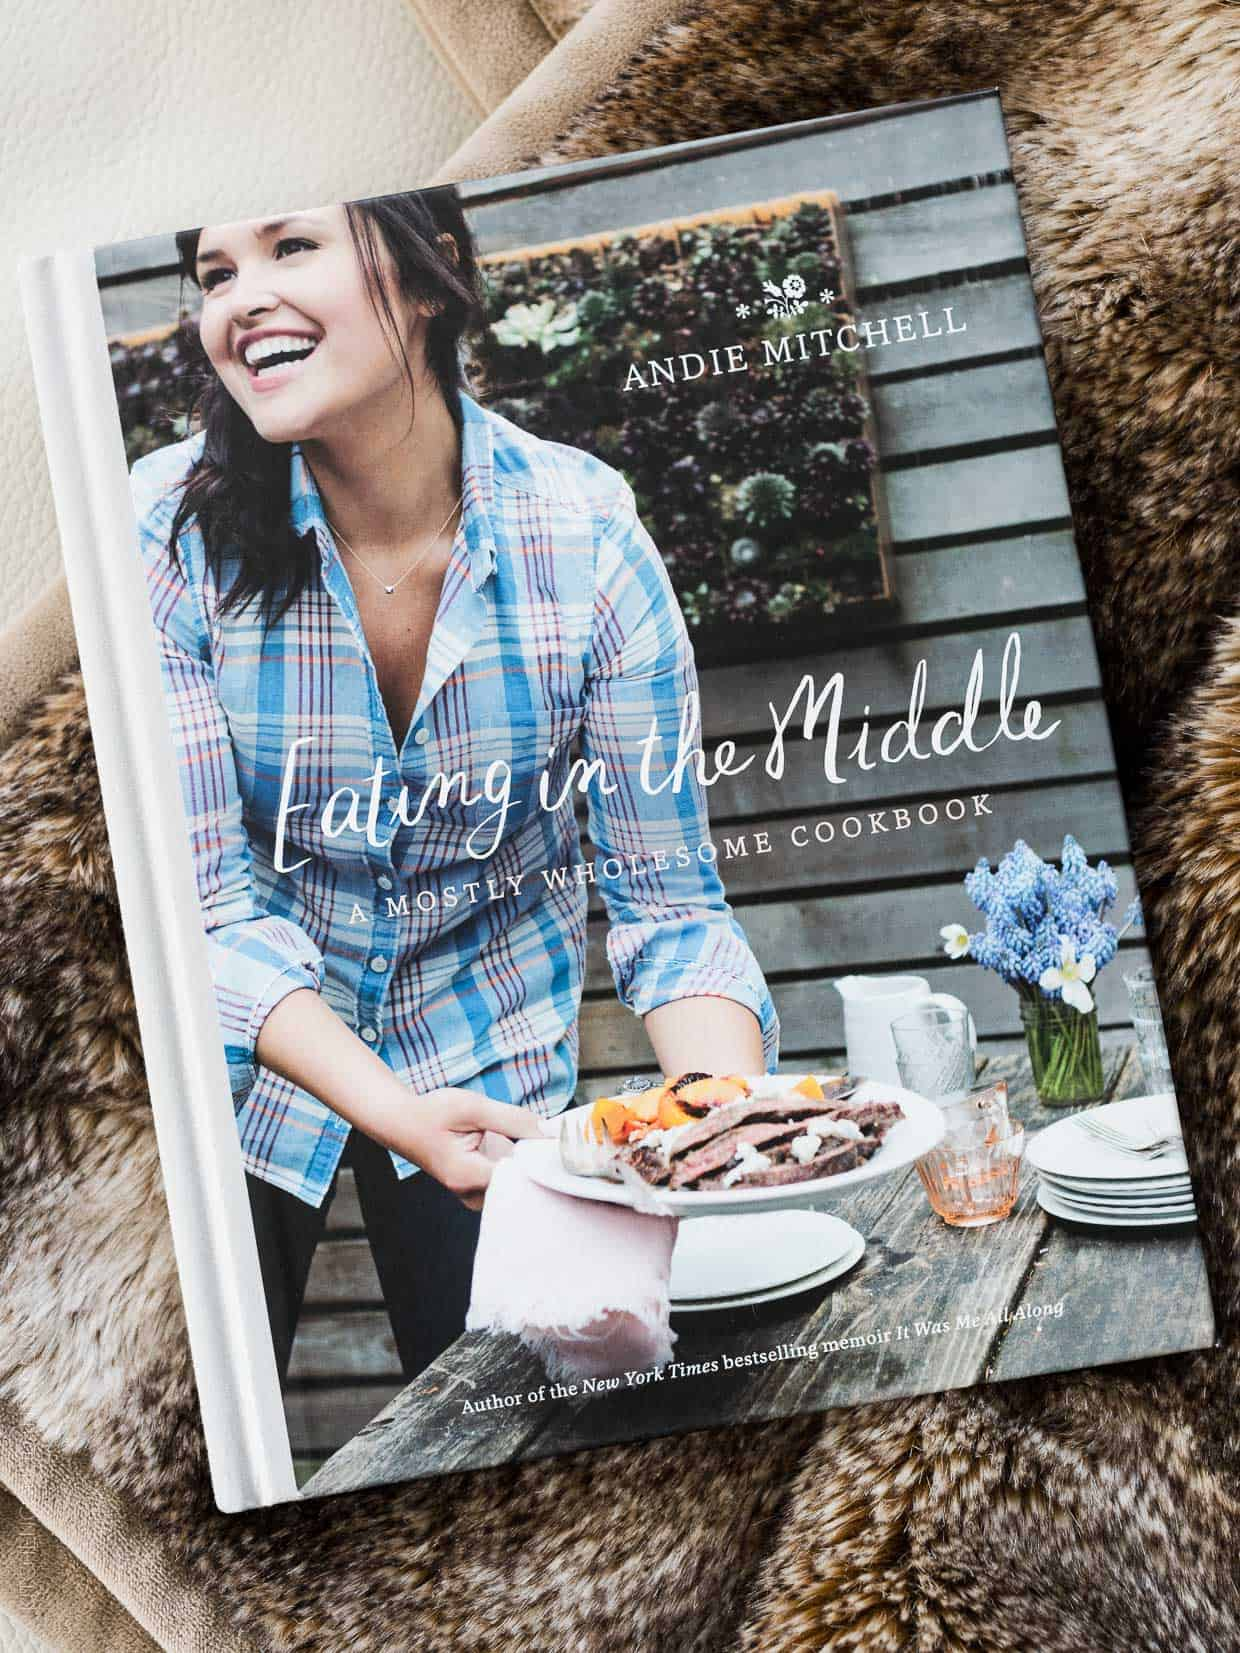 There's something for everyone in Andie Mitchell's cookbook, Eating in the Middle: A Mostly Wholesome Cookbook.